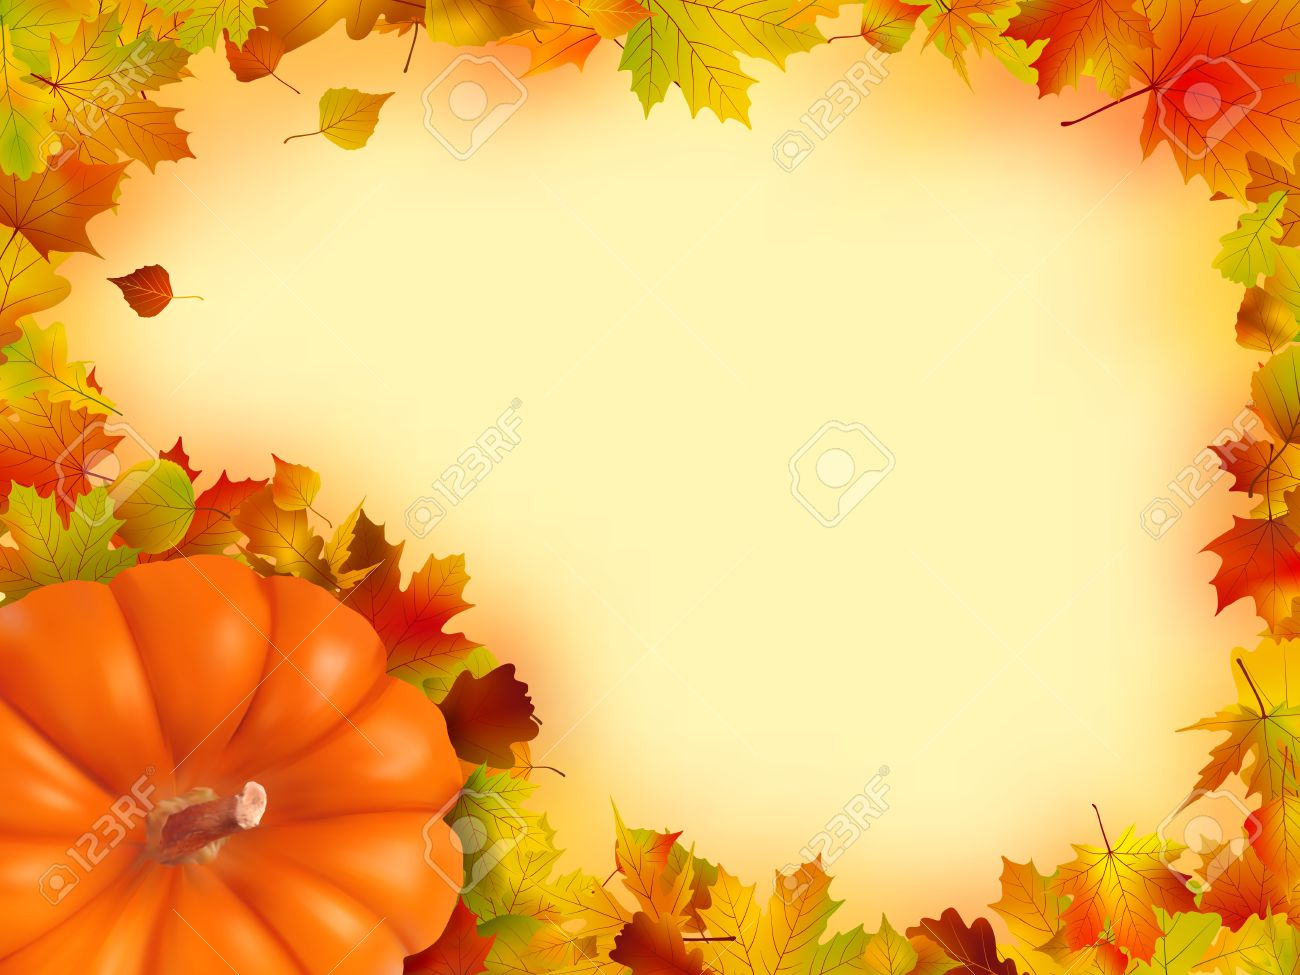 Thanksgiving Holiday Frame. Stock Photo, Picture And Royalty Free ...